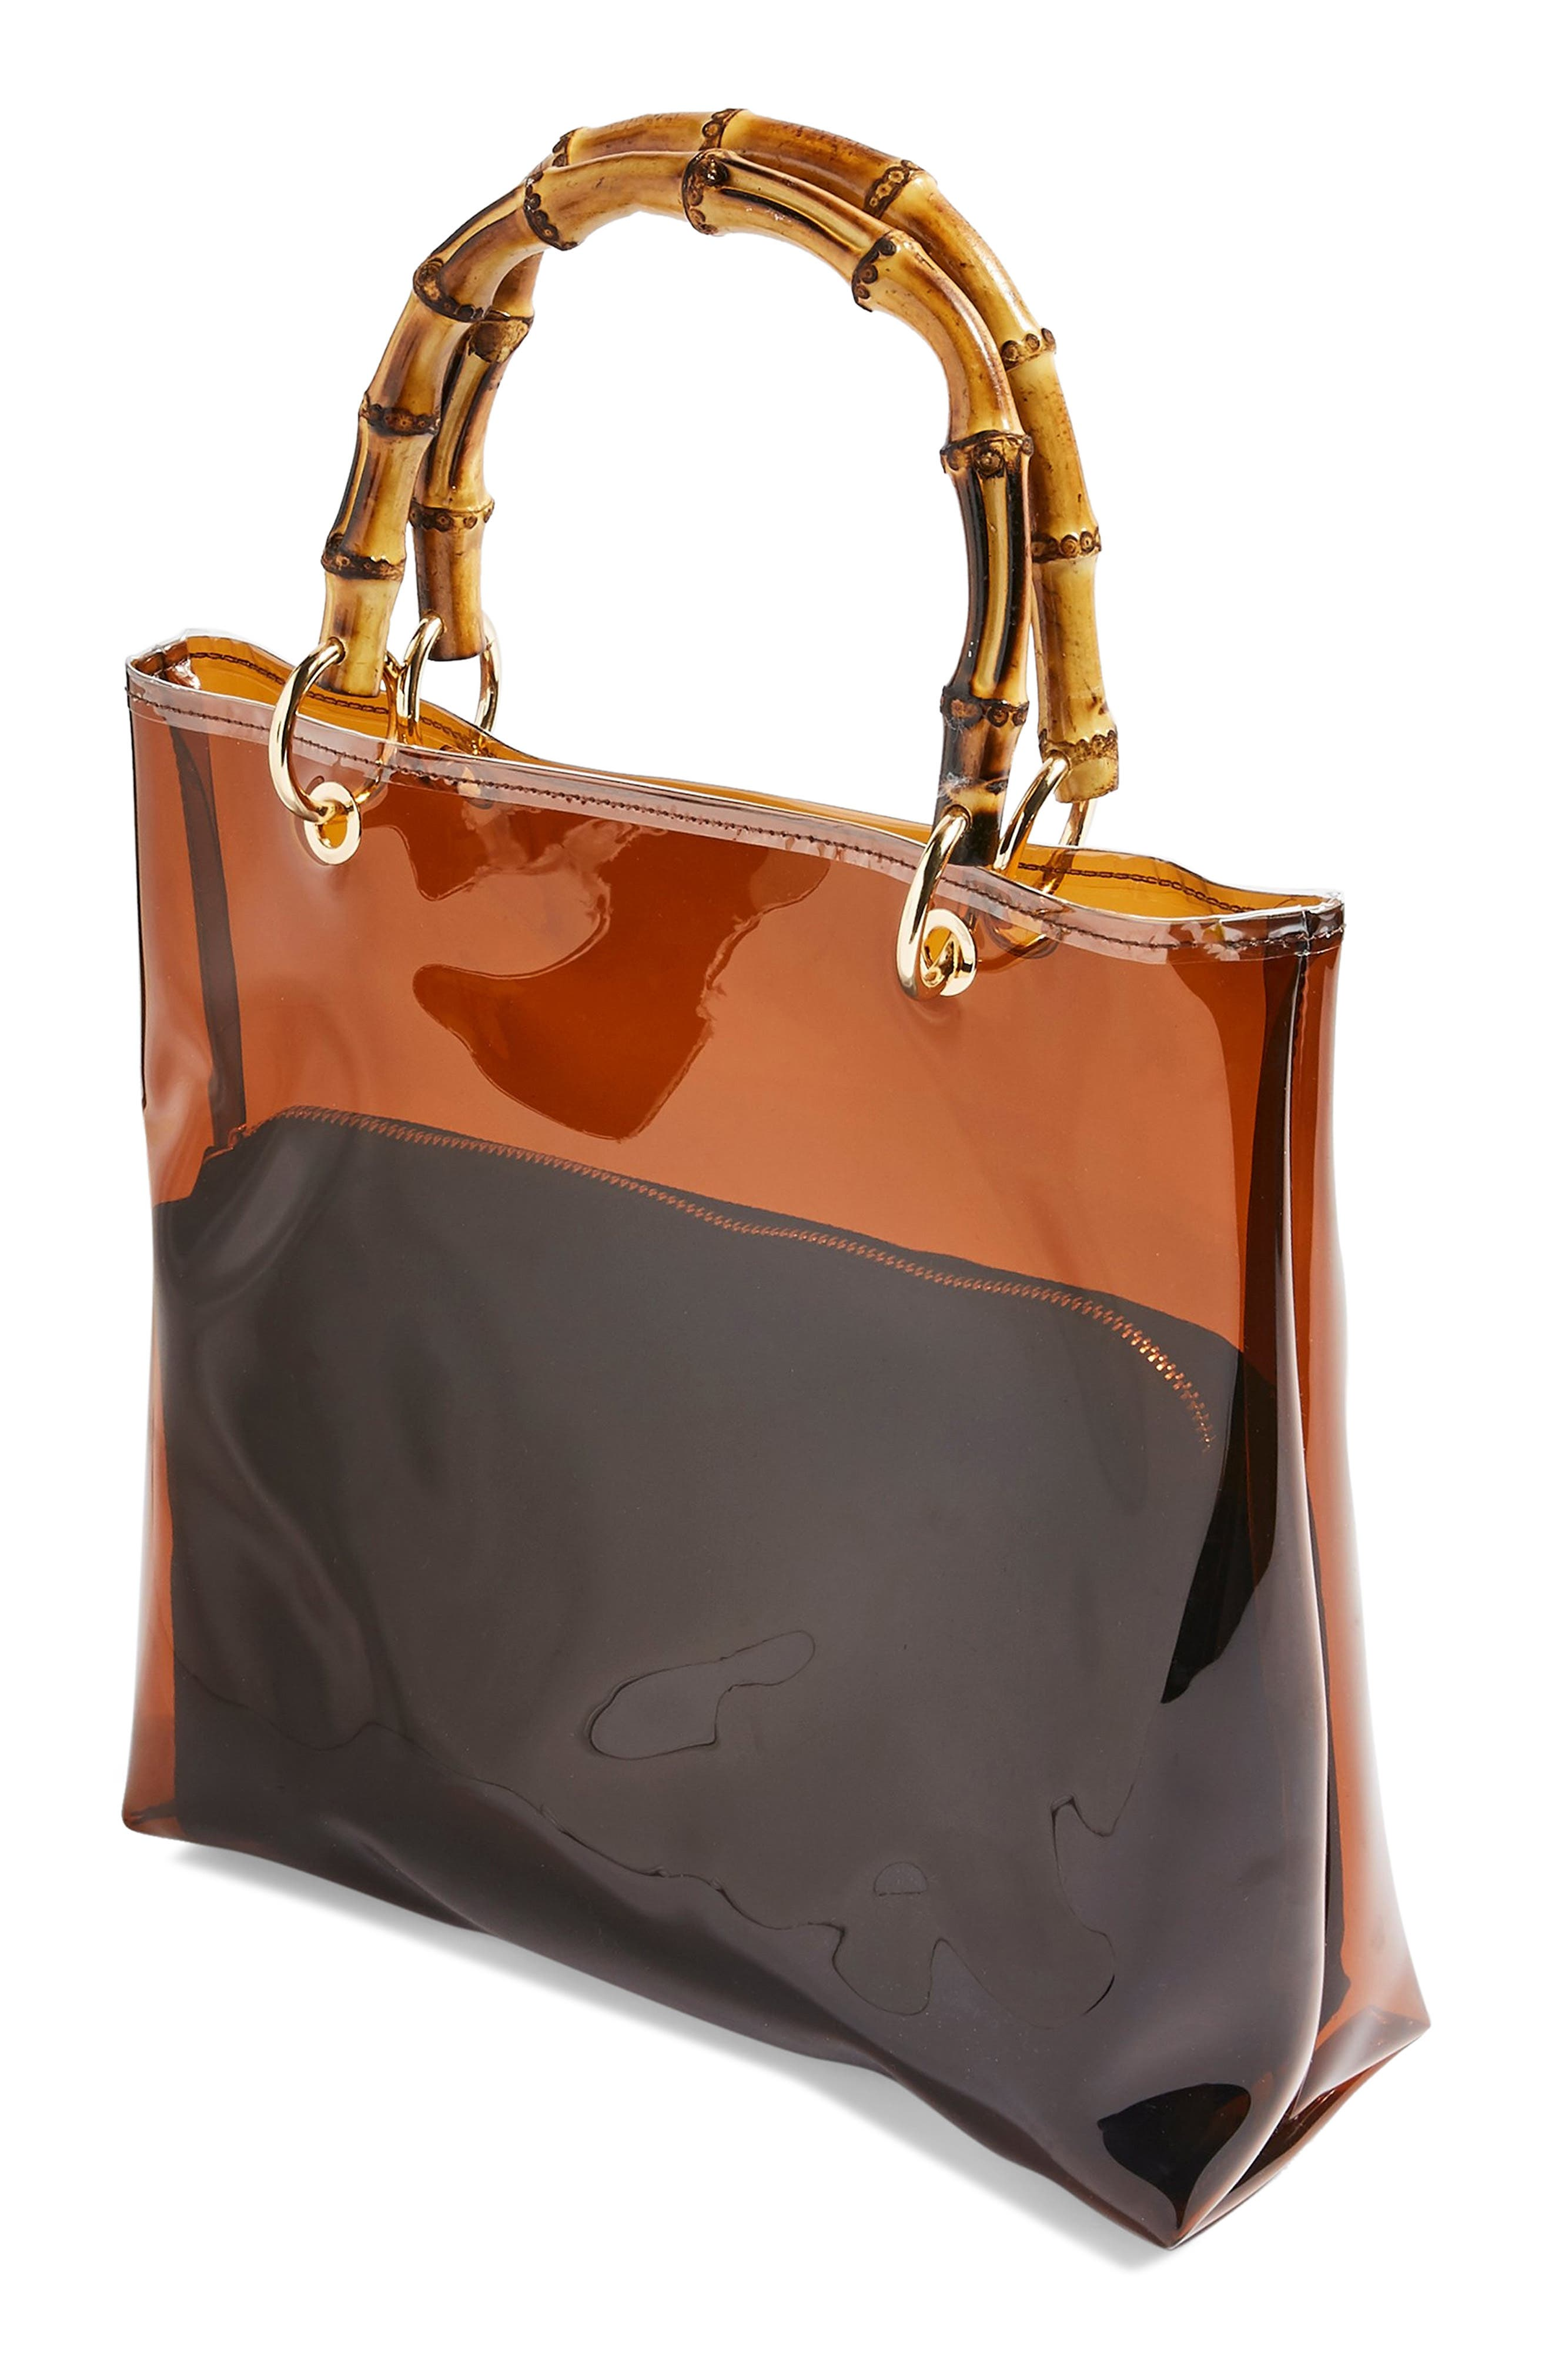 TOPSHOP, Mercy Top Handle Tote Bag, Alternate thumbnail 5, color, BROWN